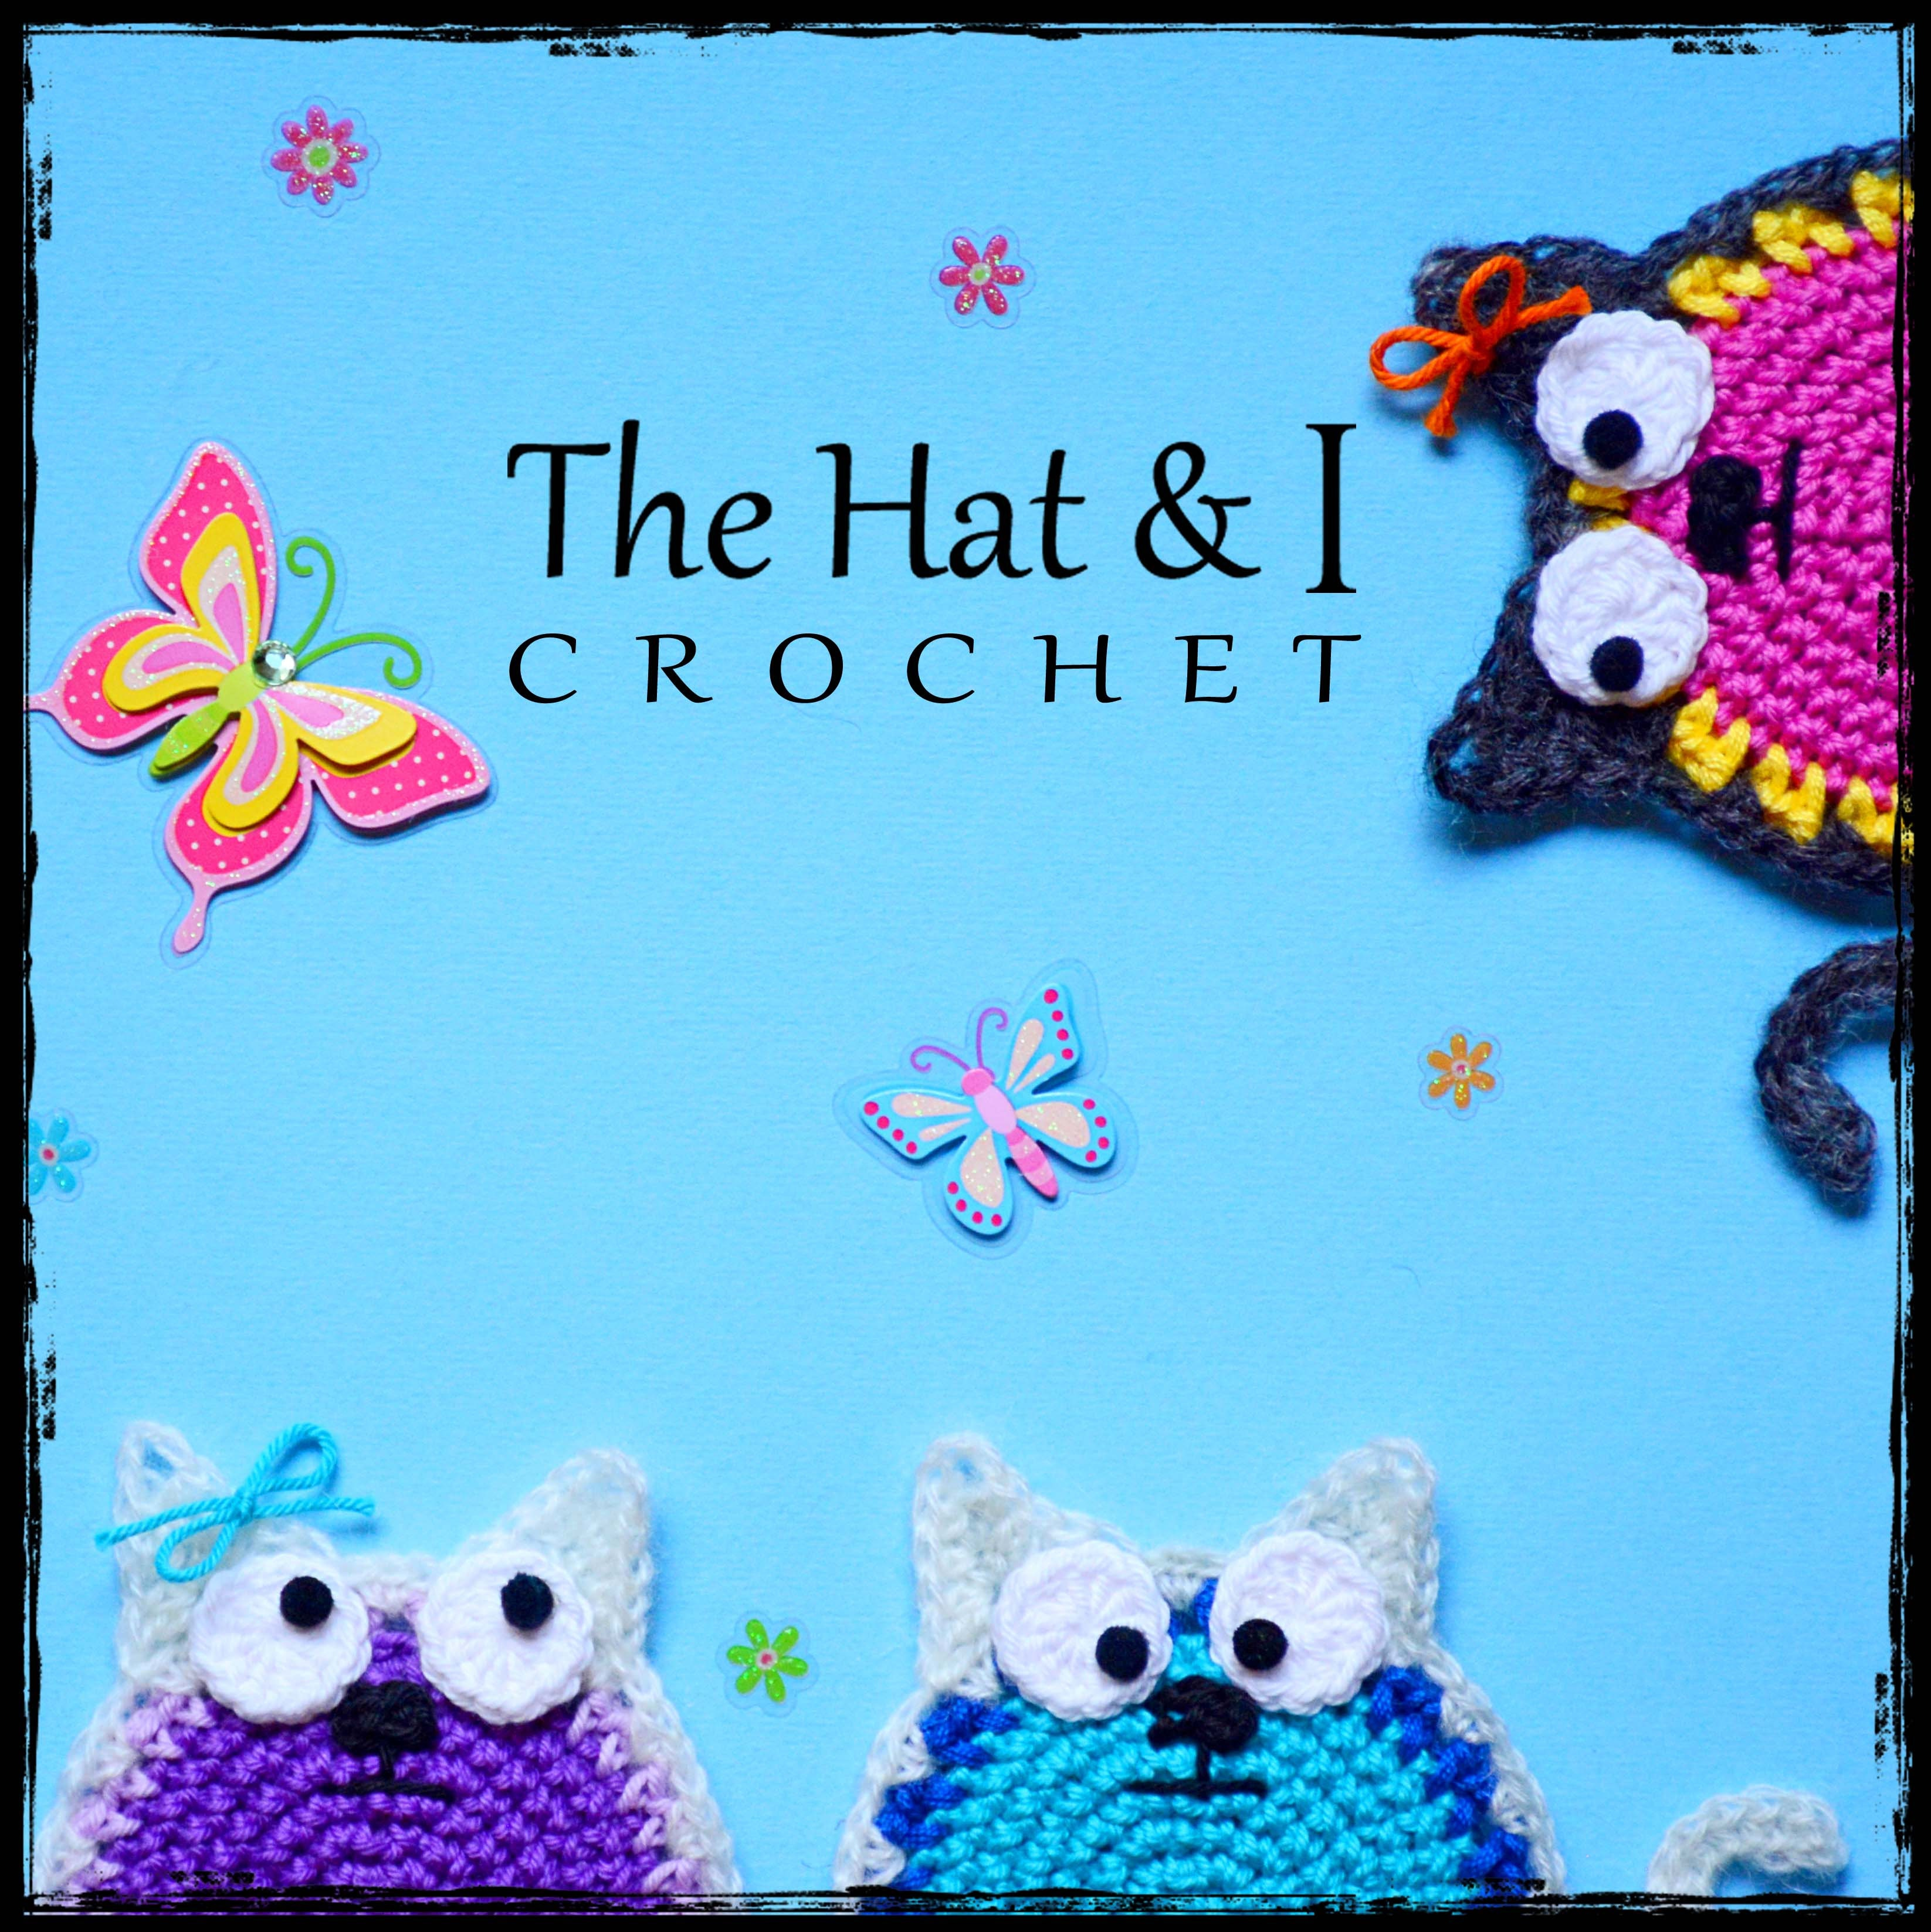 Crochet patterns for beautiful blankets hats & more von TheHatandI